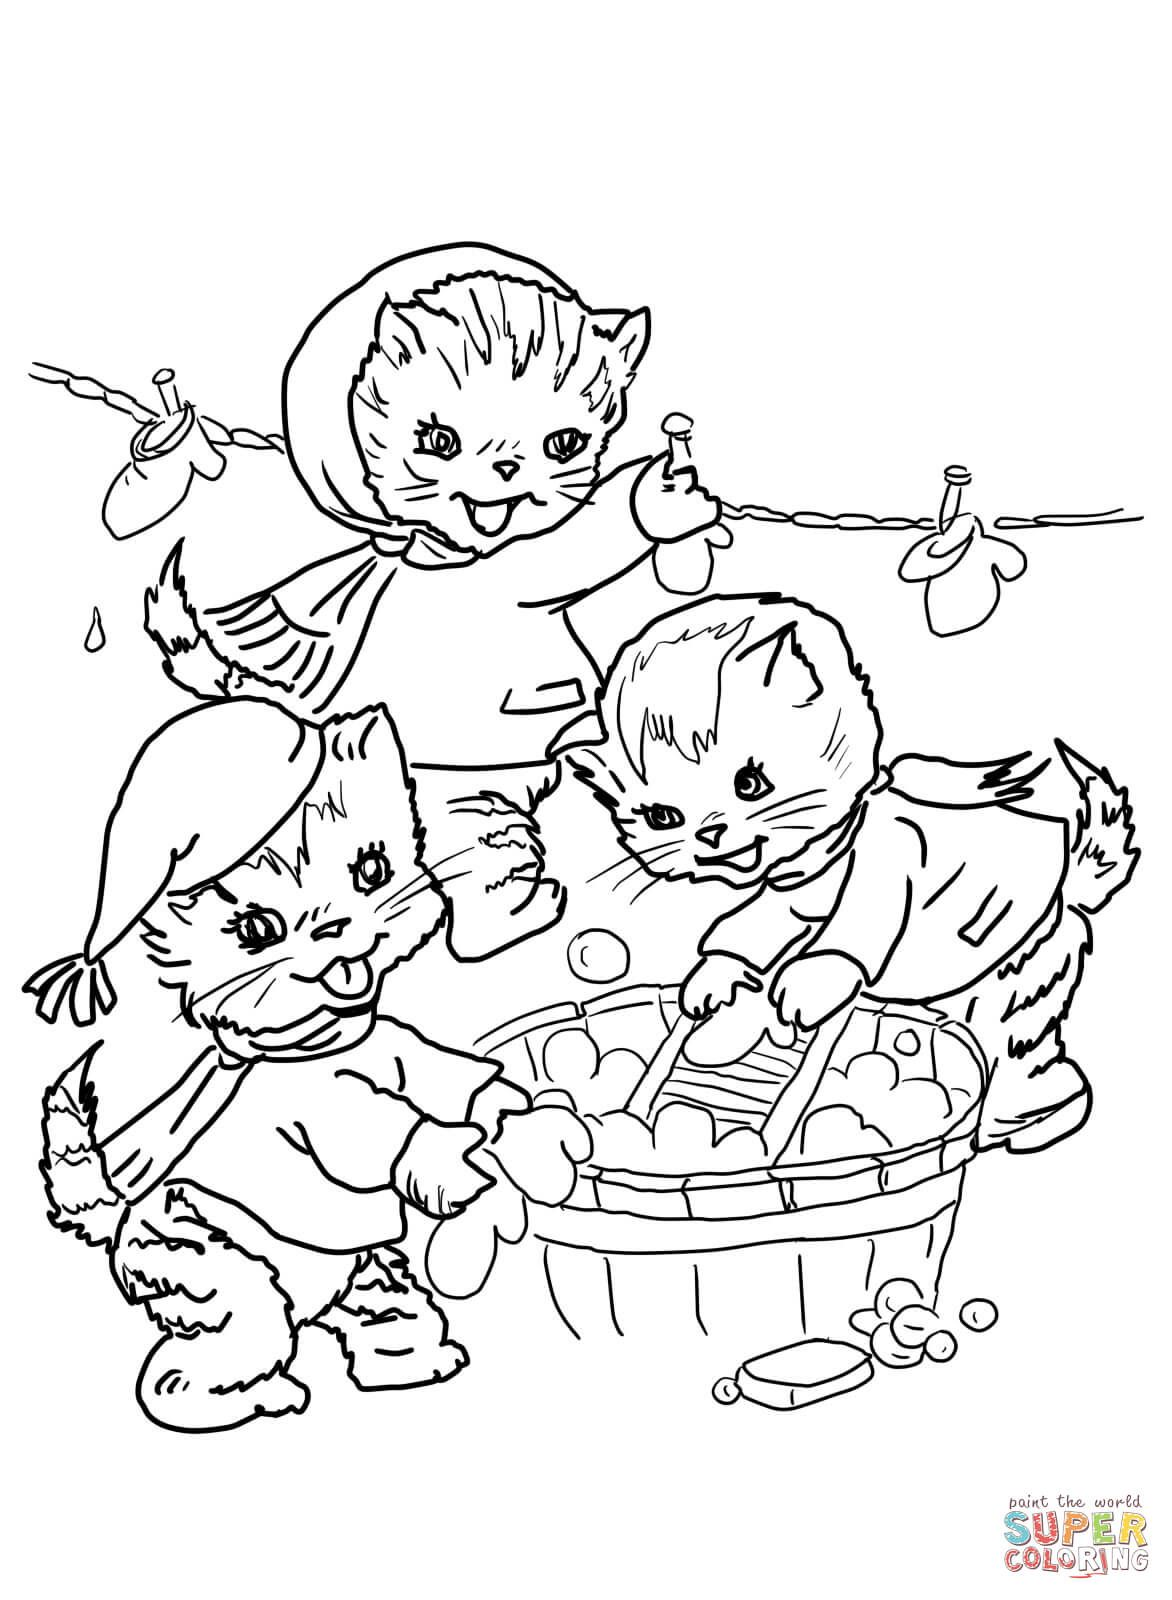 The Three Little Kittens They Washed Their Mittens Super